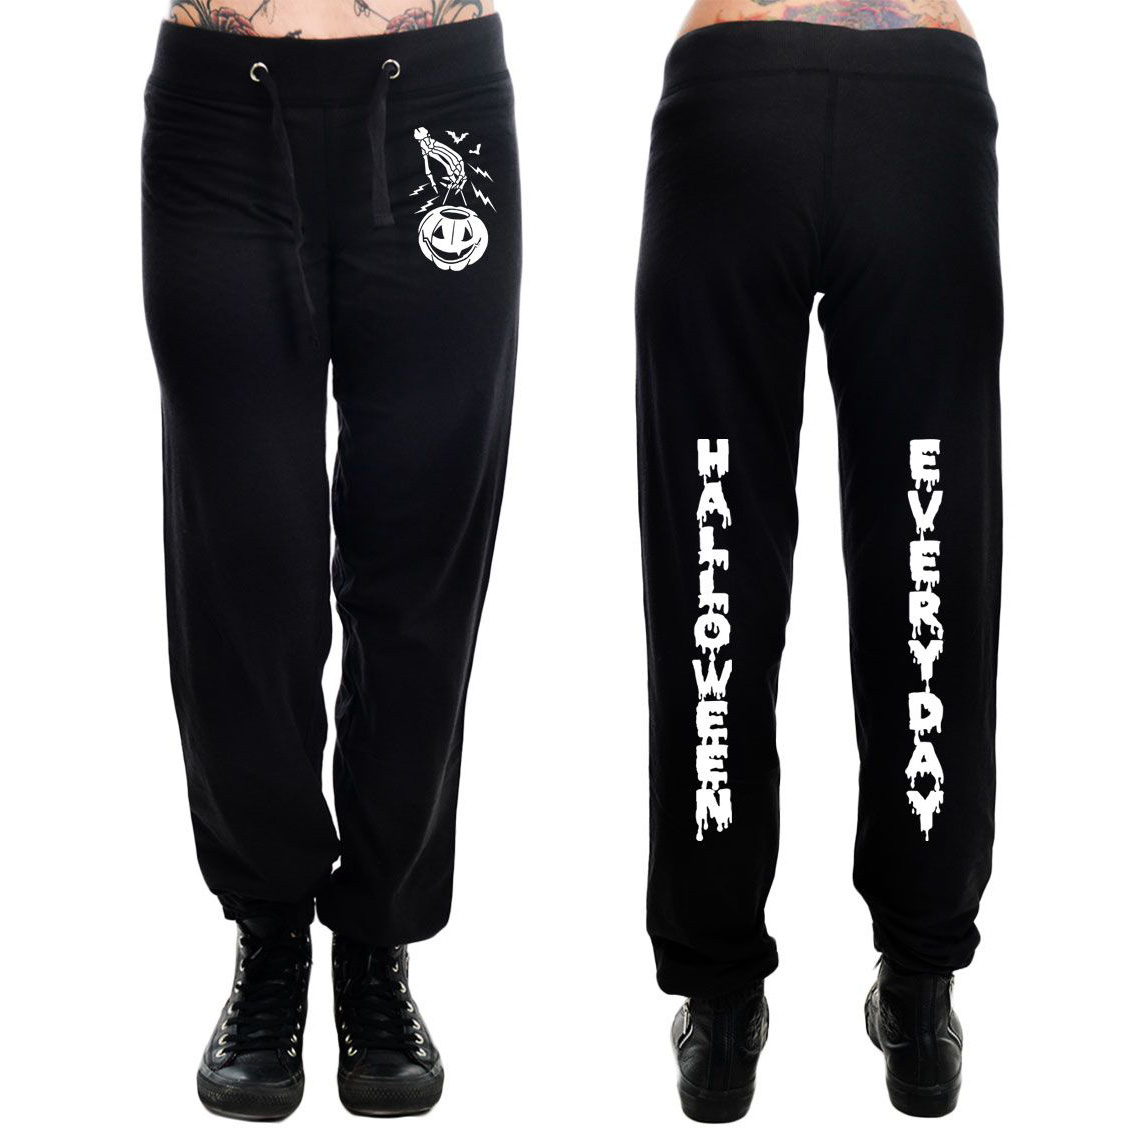 Sweatpants by Too Fast Clothing - Halloween Everyday - SALE